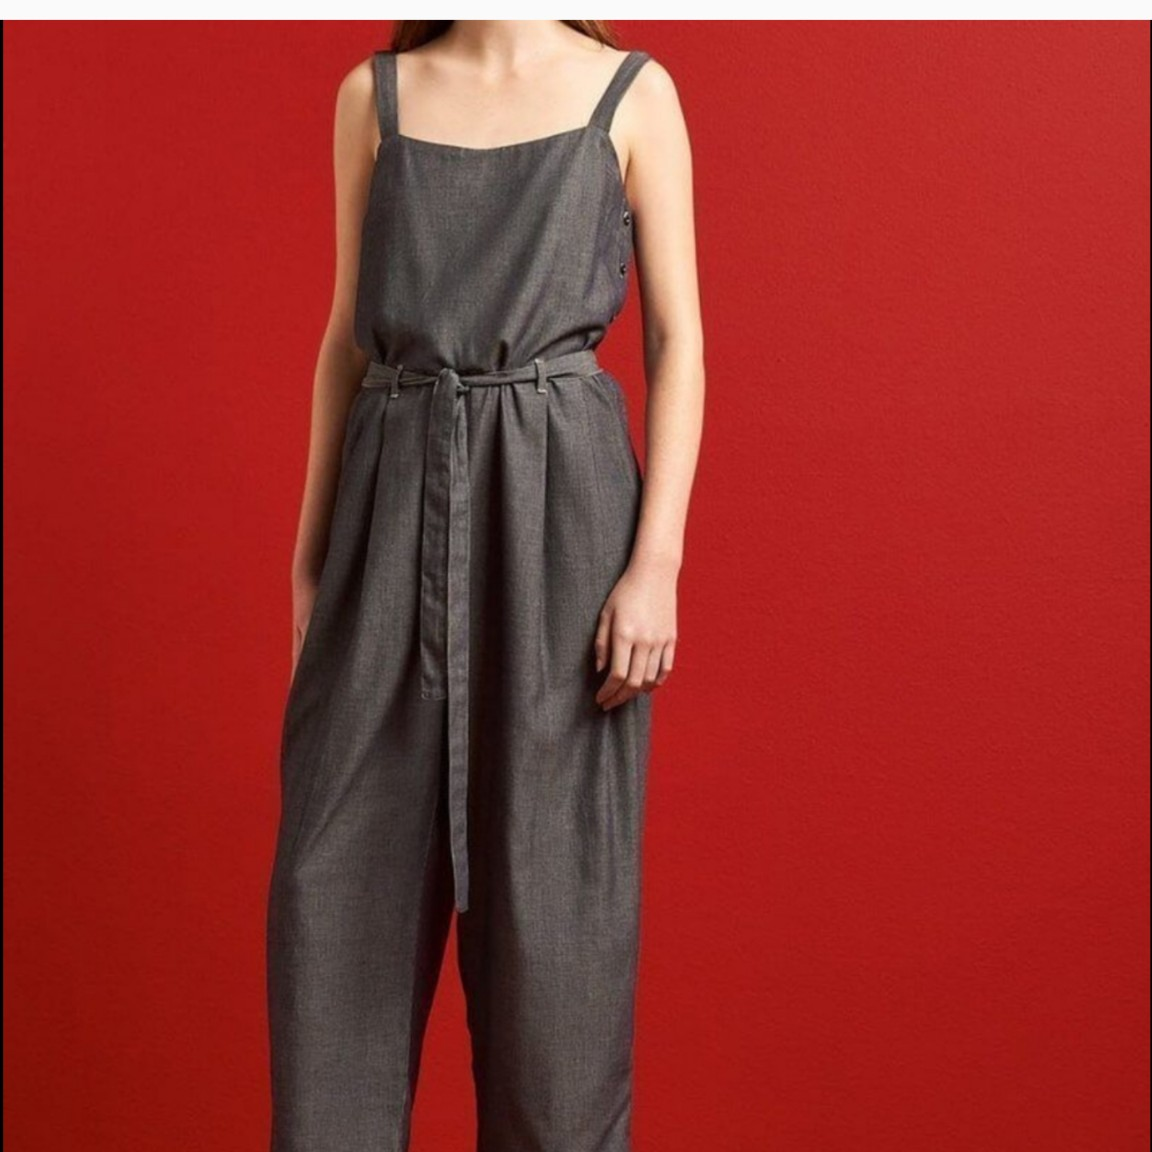 Product Image 1 - Cute lightweight chambray jumpsuit by